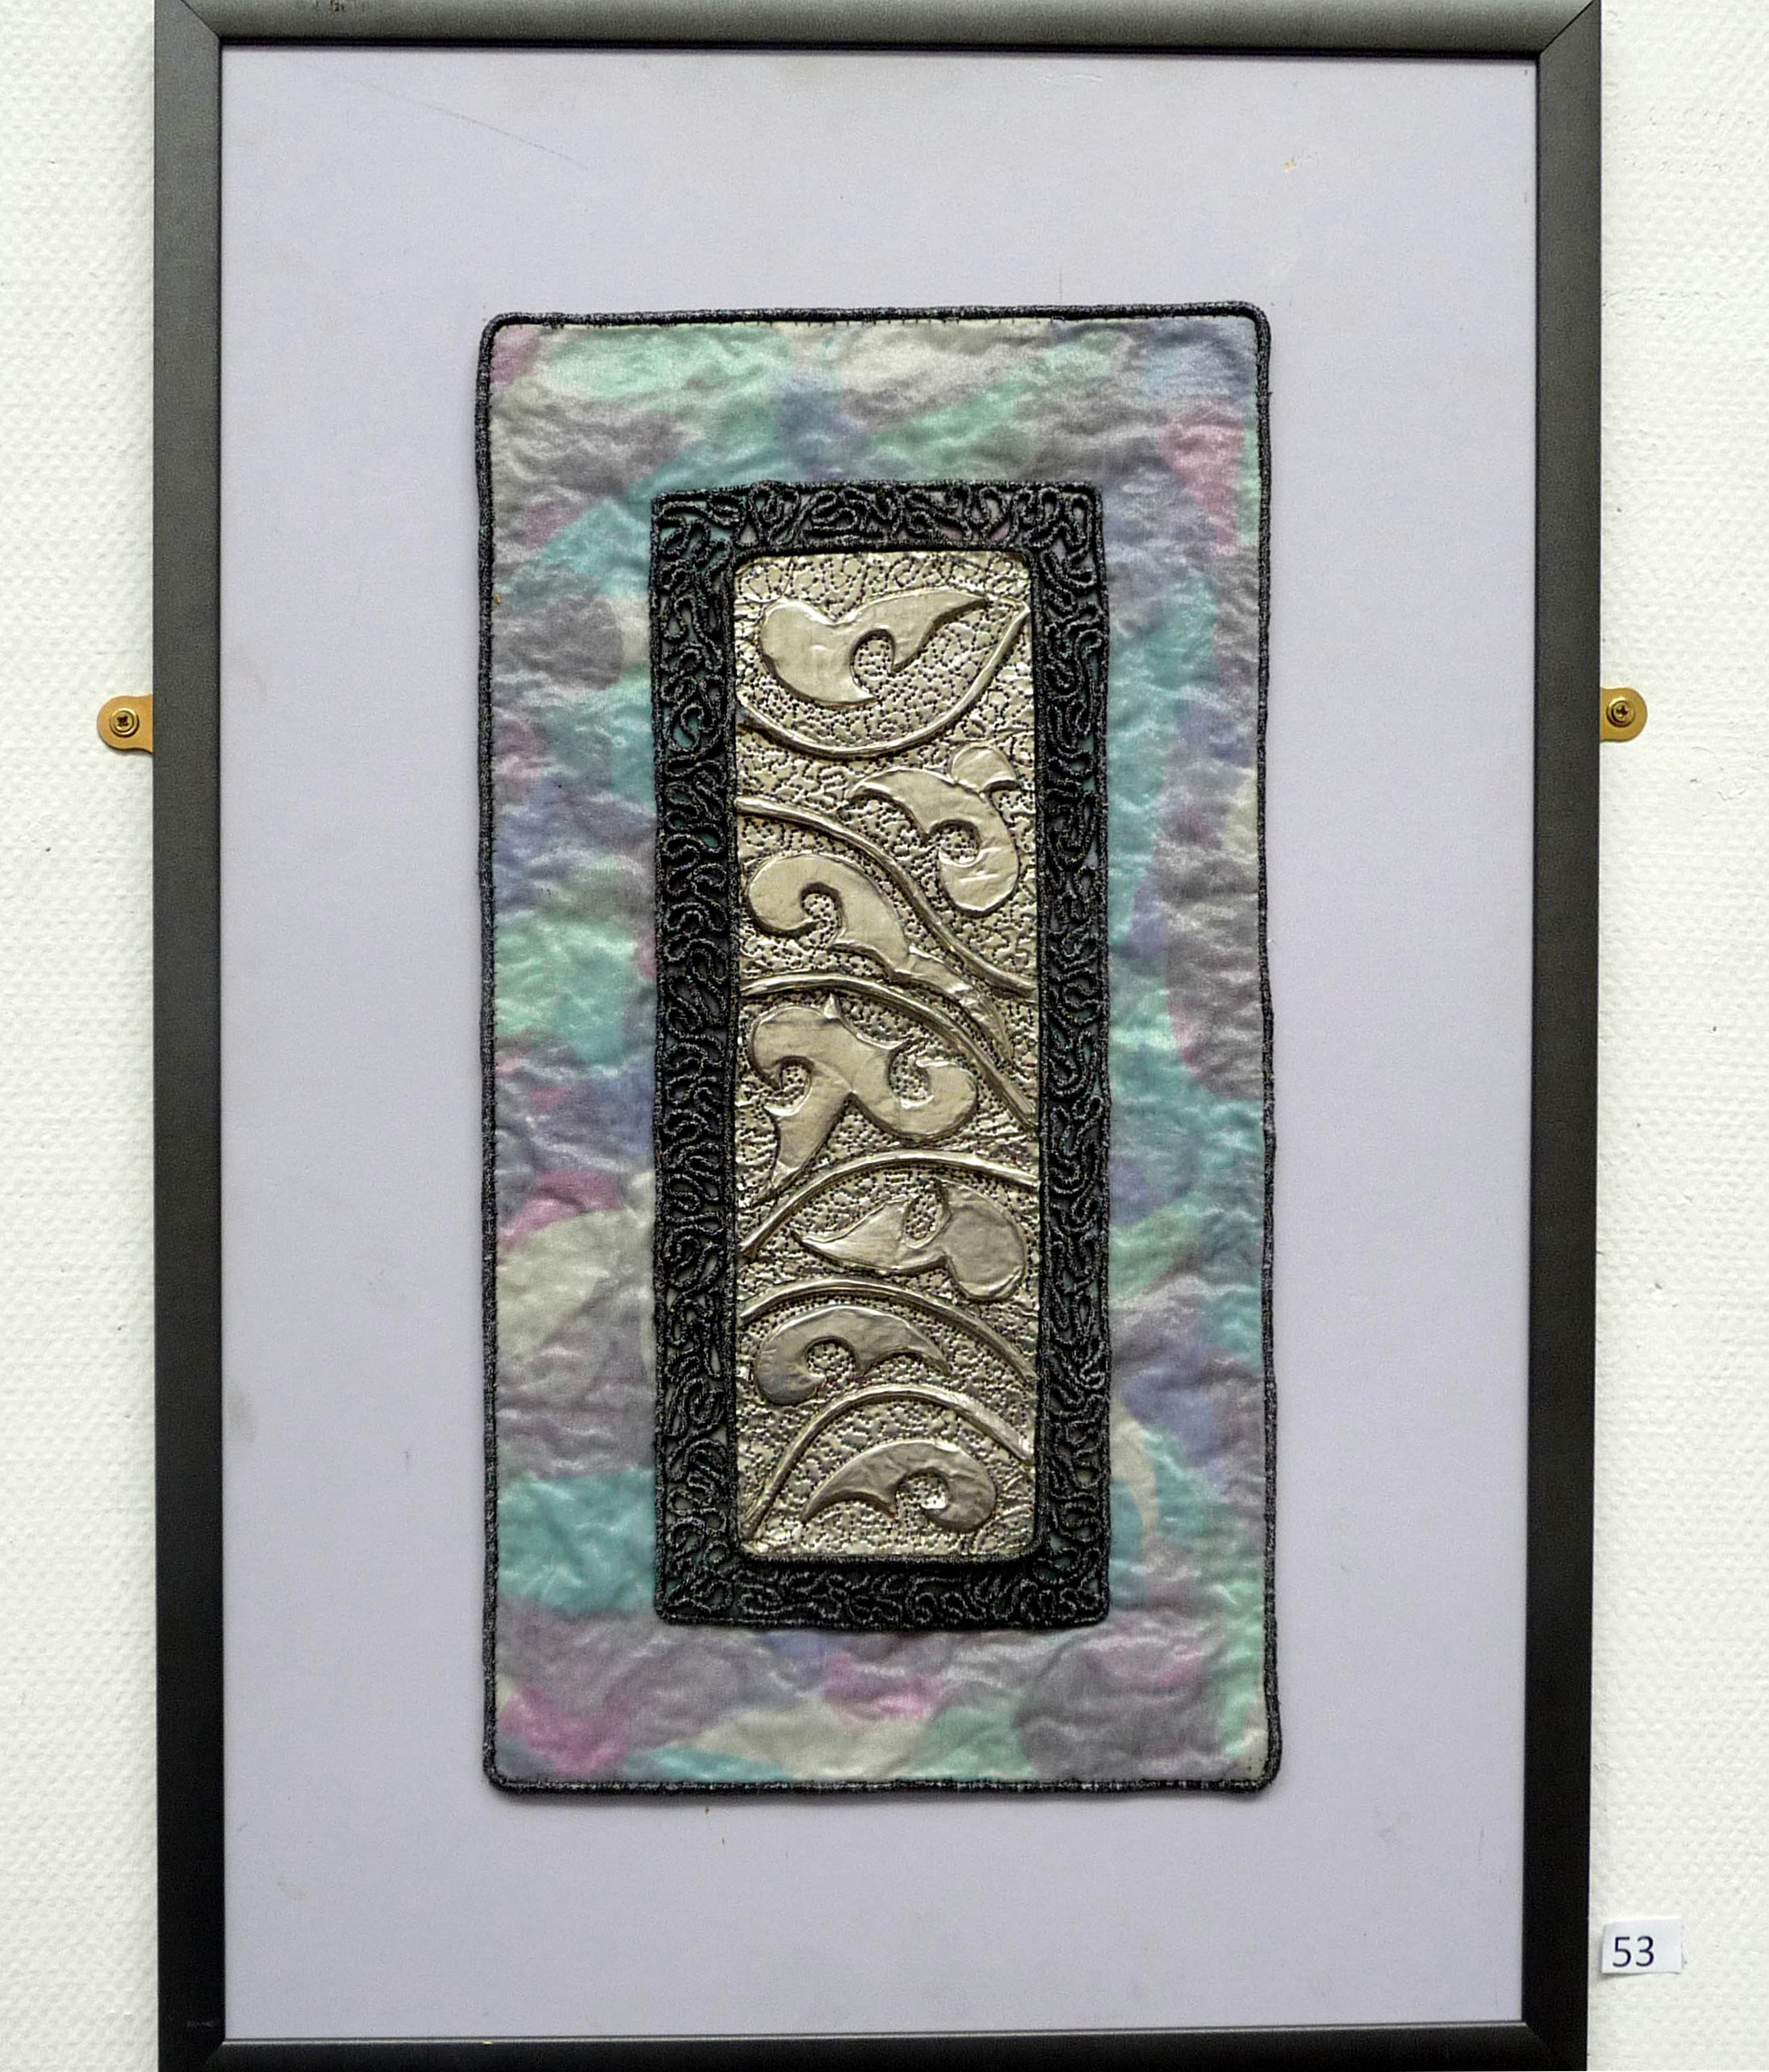 PEWTER 1 by Jean Machulec, embroidered pewter, machine and hand stitching